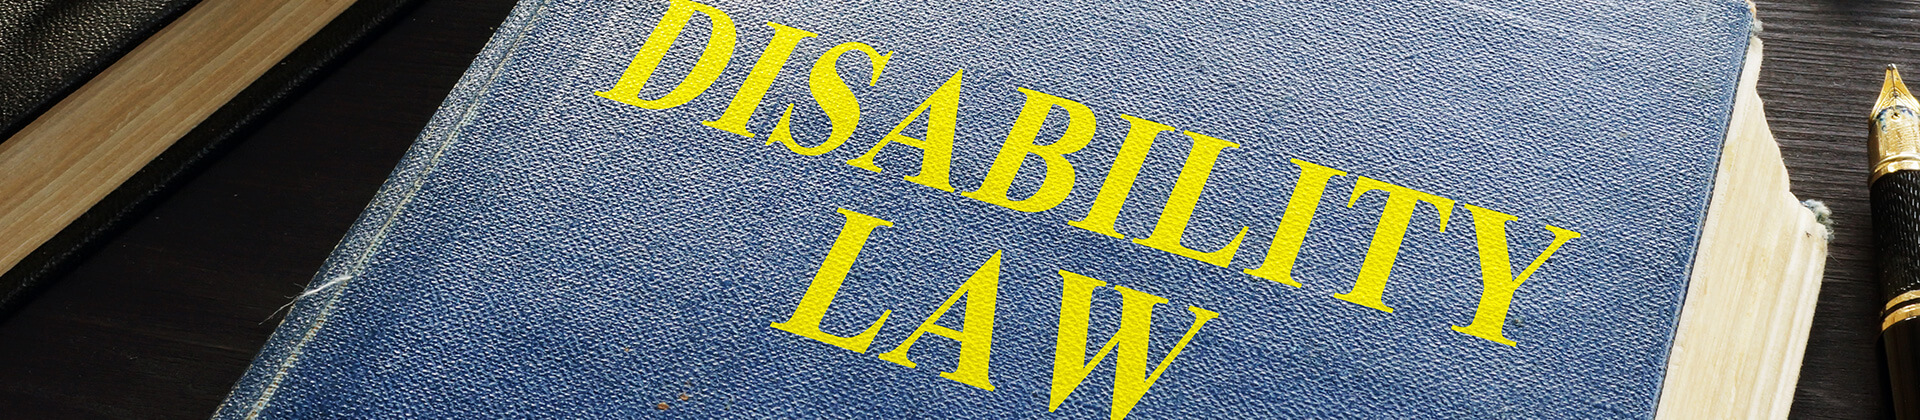 Disability law book